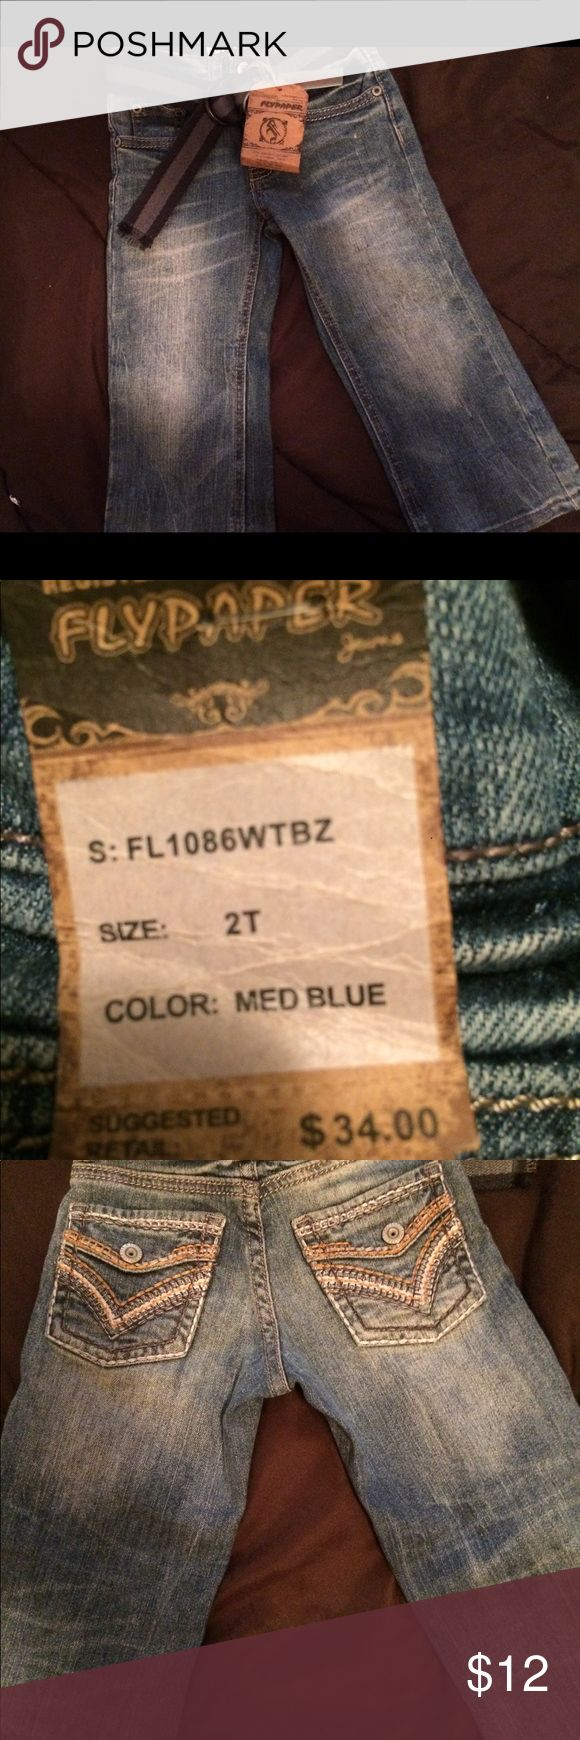 NWT 2T FLYPAPER JEANS New with tags! 2T Stretch Boot Cut Jeans with Belt. FLYPAPER Bottoms Jeans